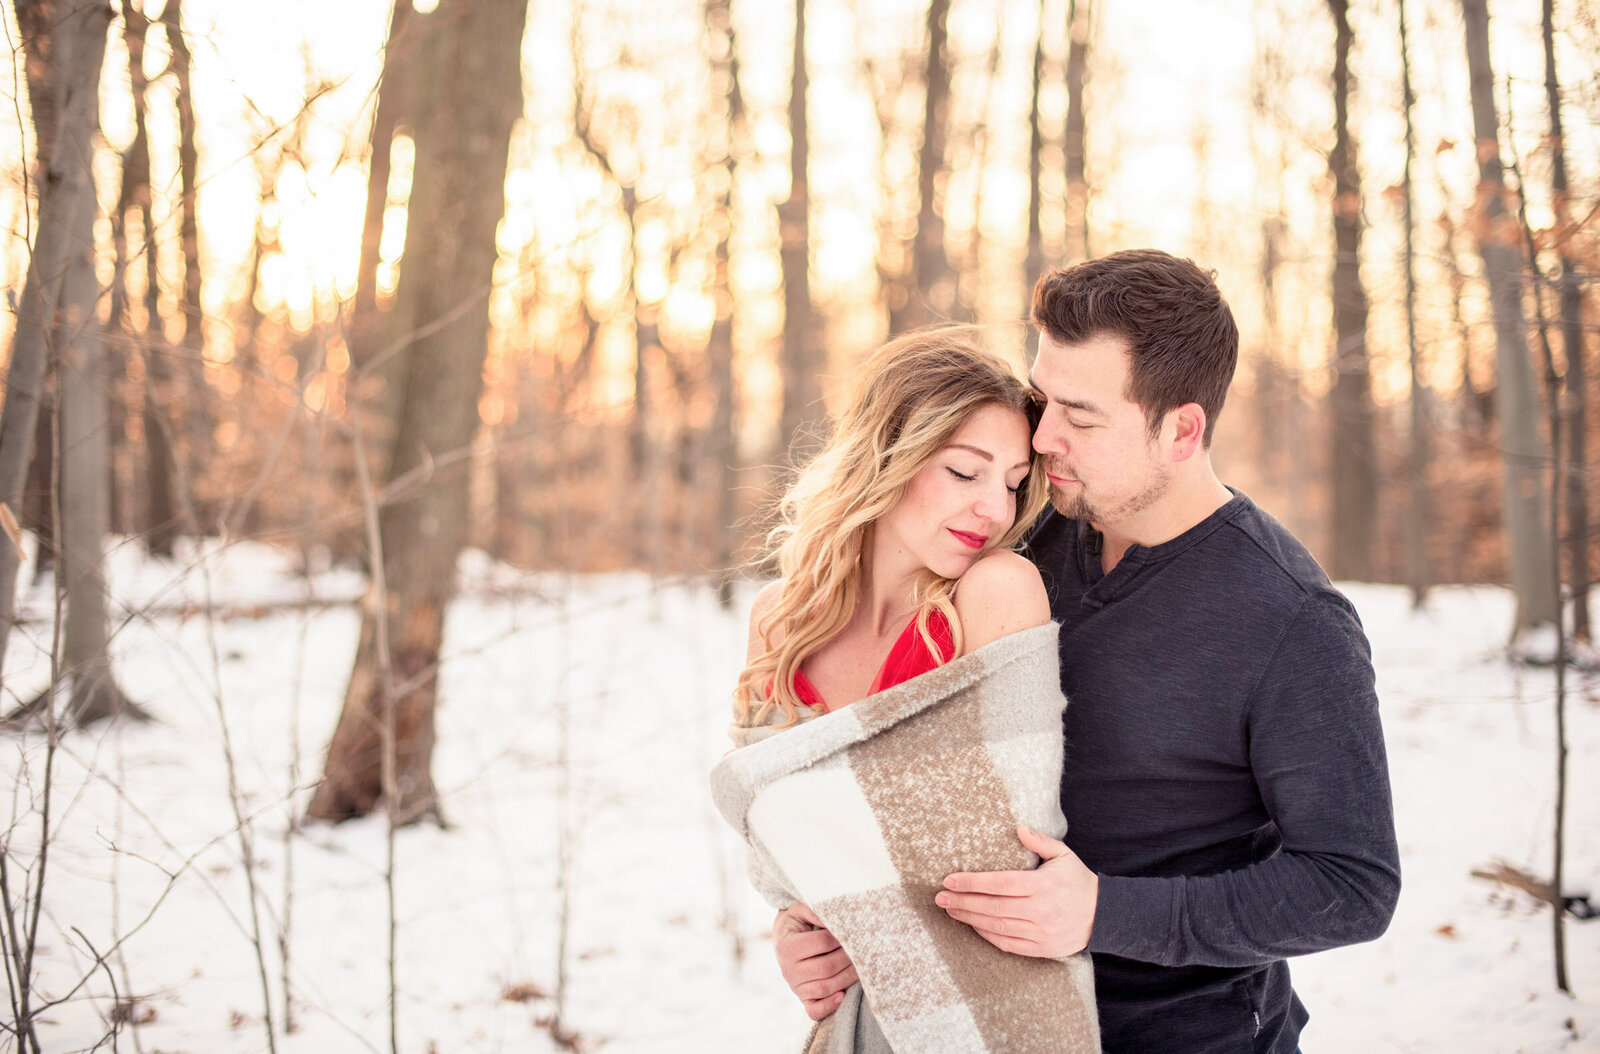 47-hudson-valley-ny-engagement-photographer